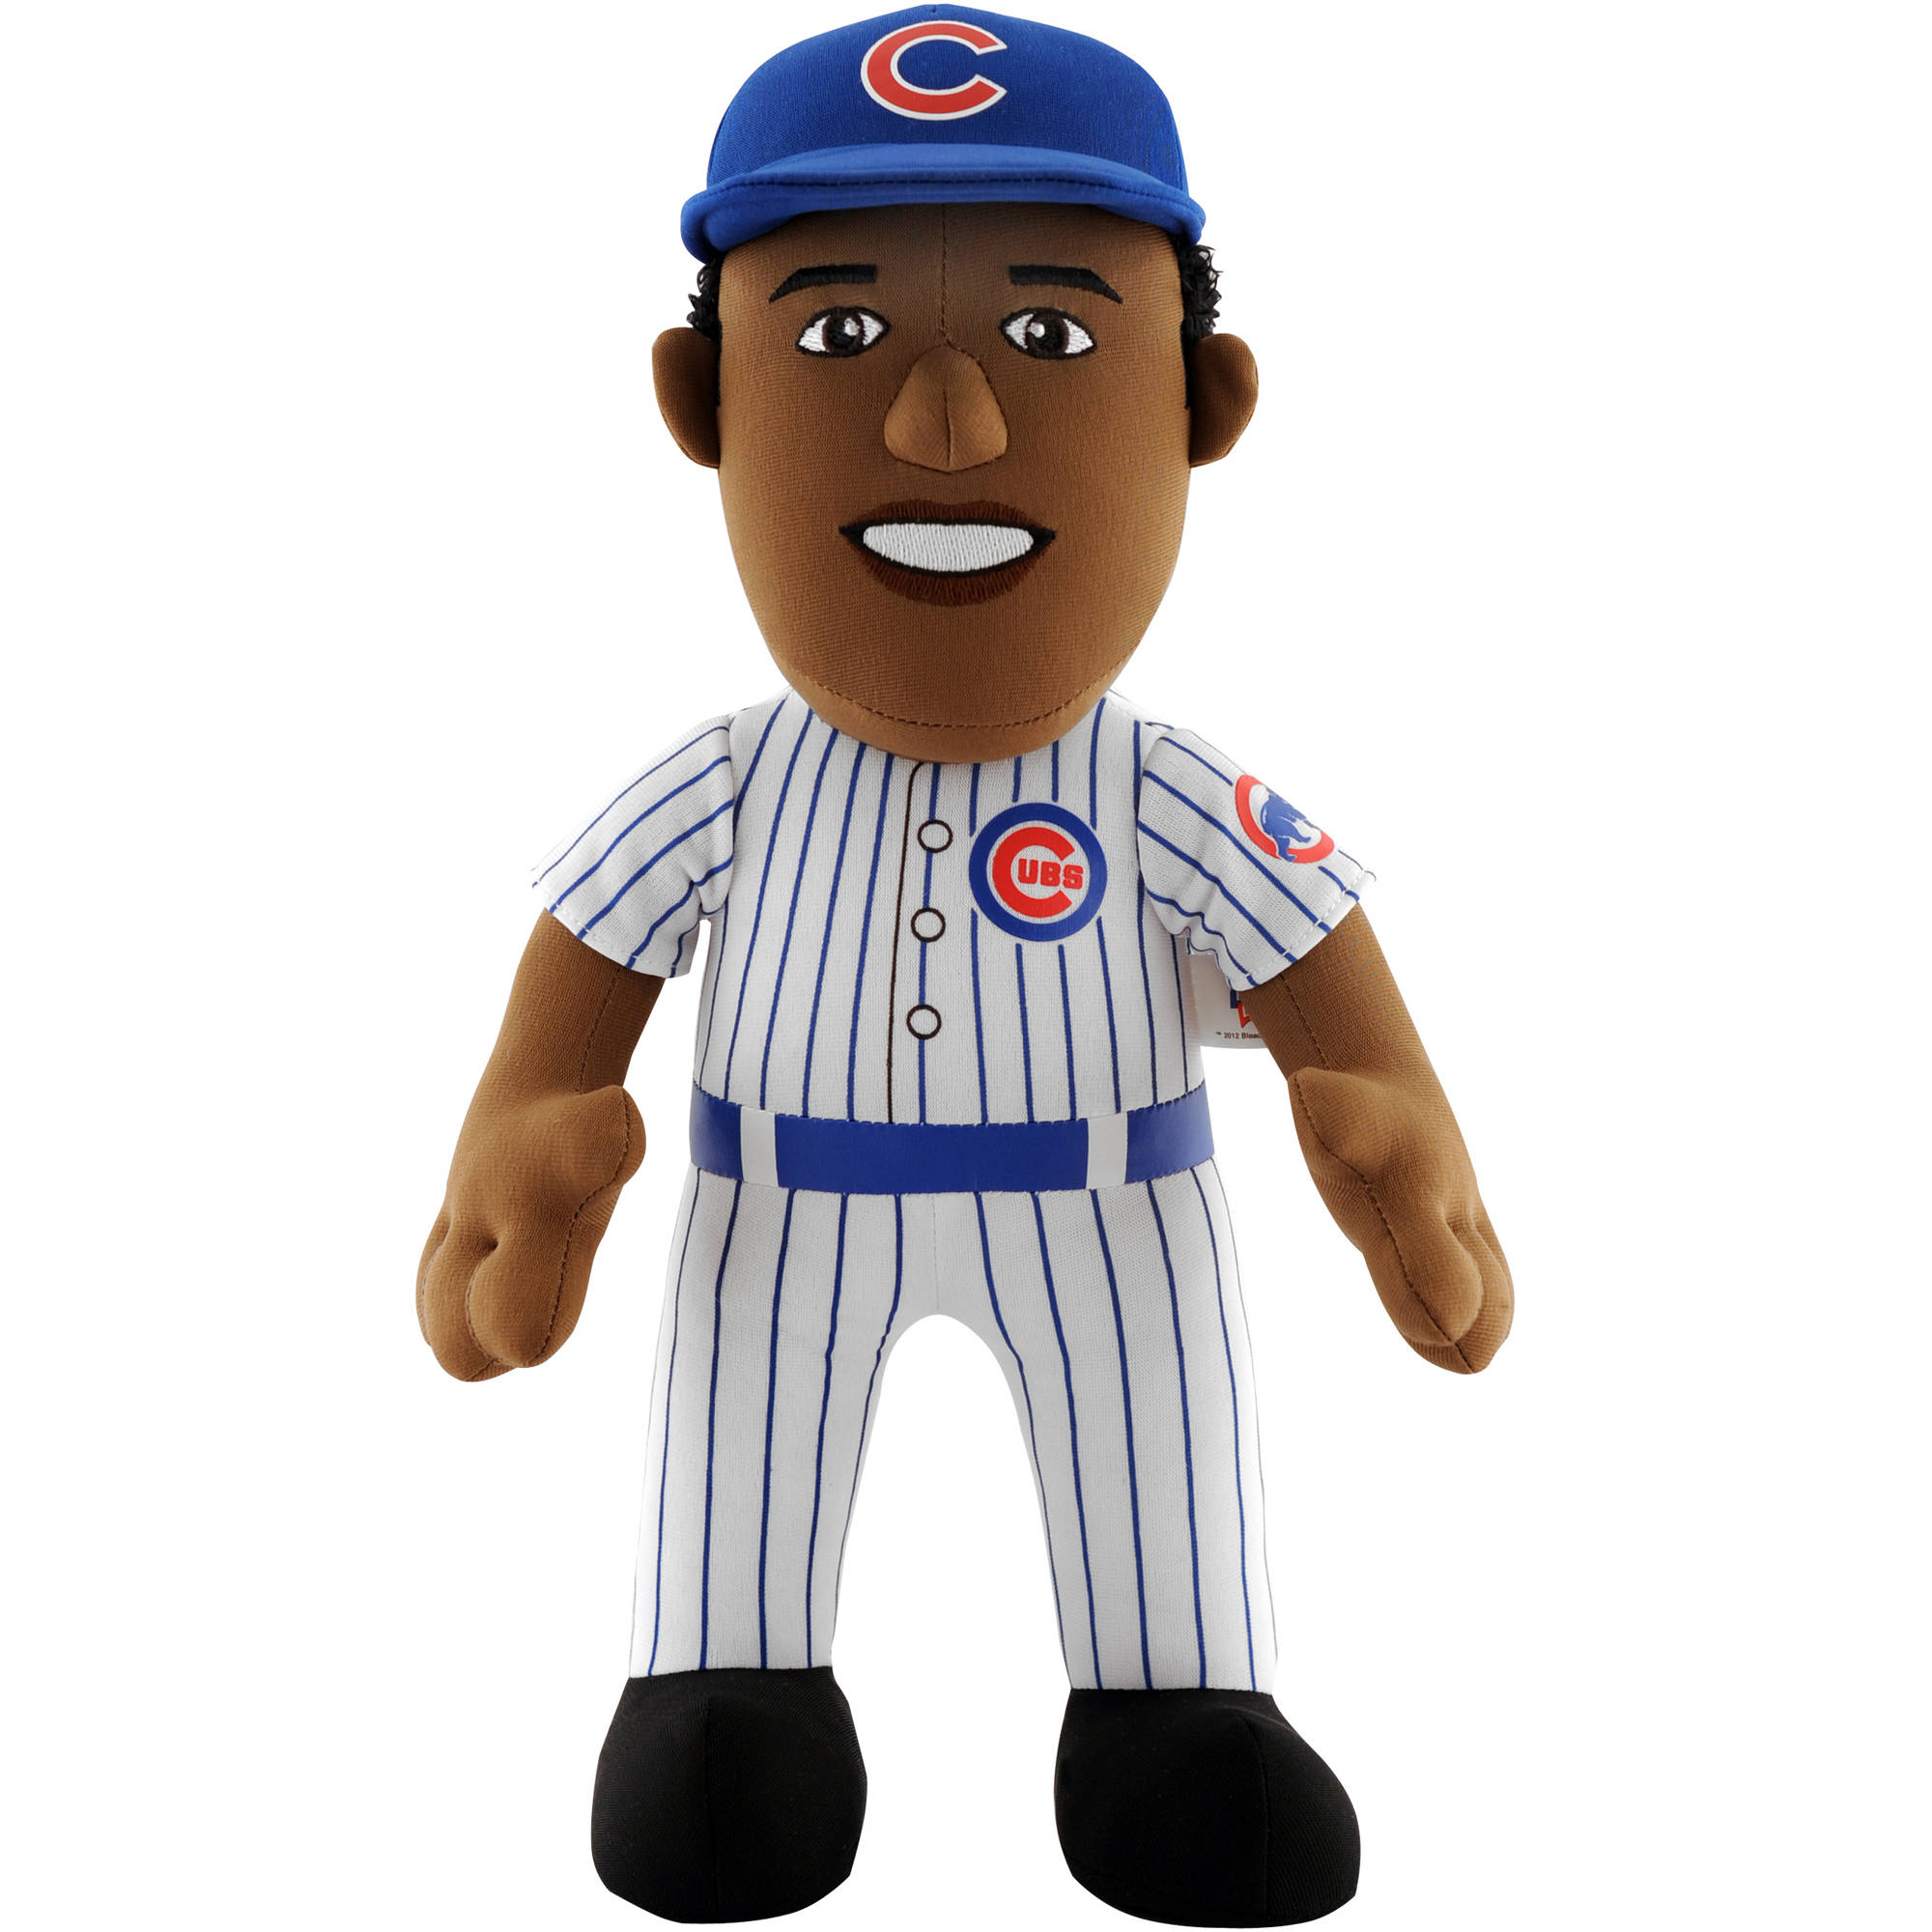 "Bleacher Creatures MLB 14"" Plush Doll, Starlin Castro, Chicago Cubs"